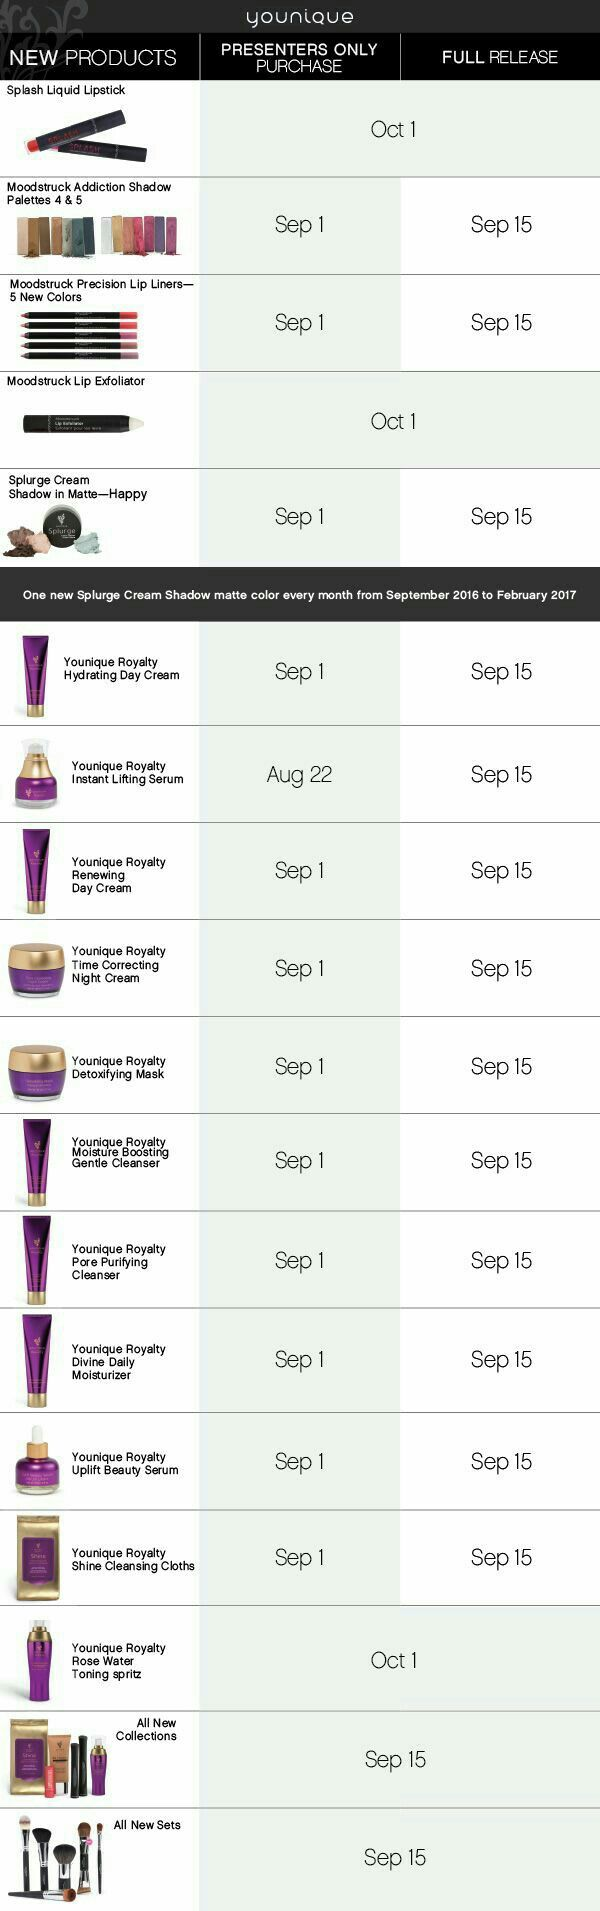 Younique new products release dates! www.thedivadonna.com